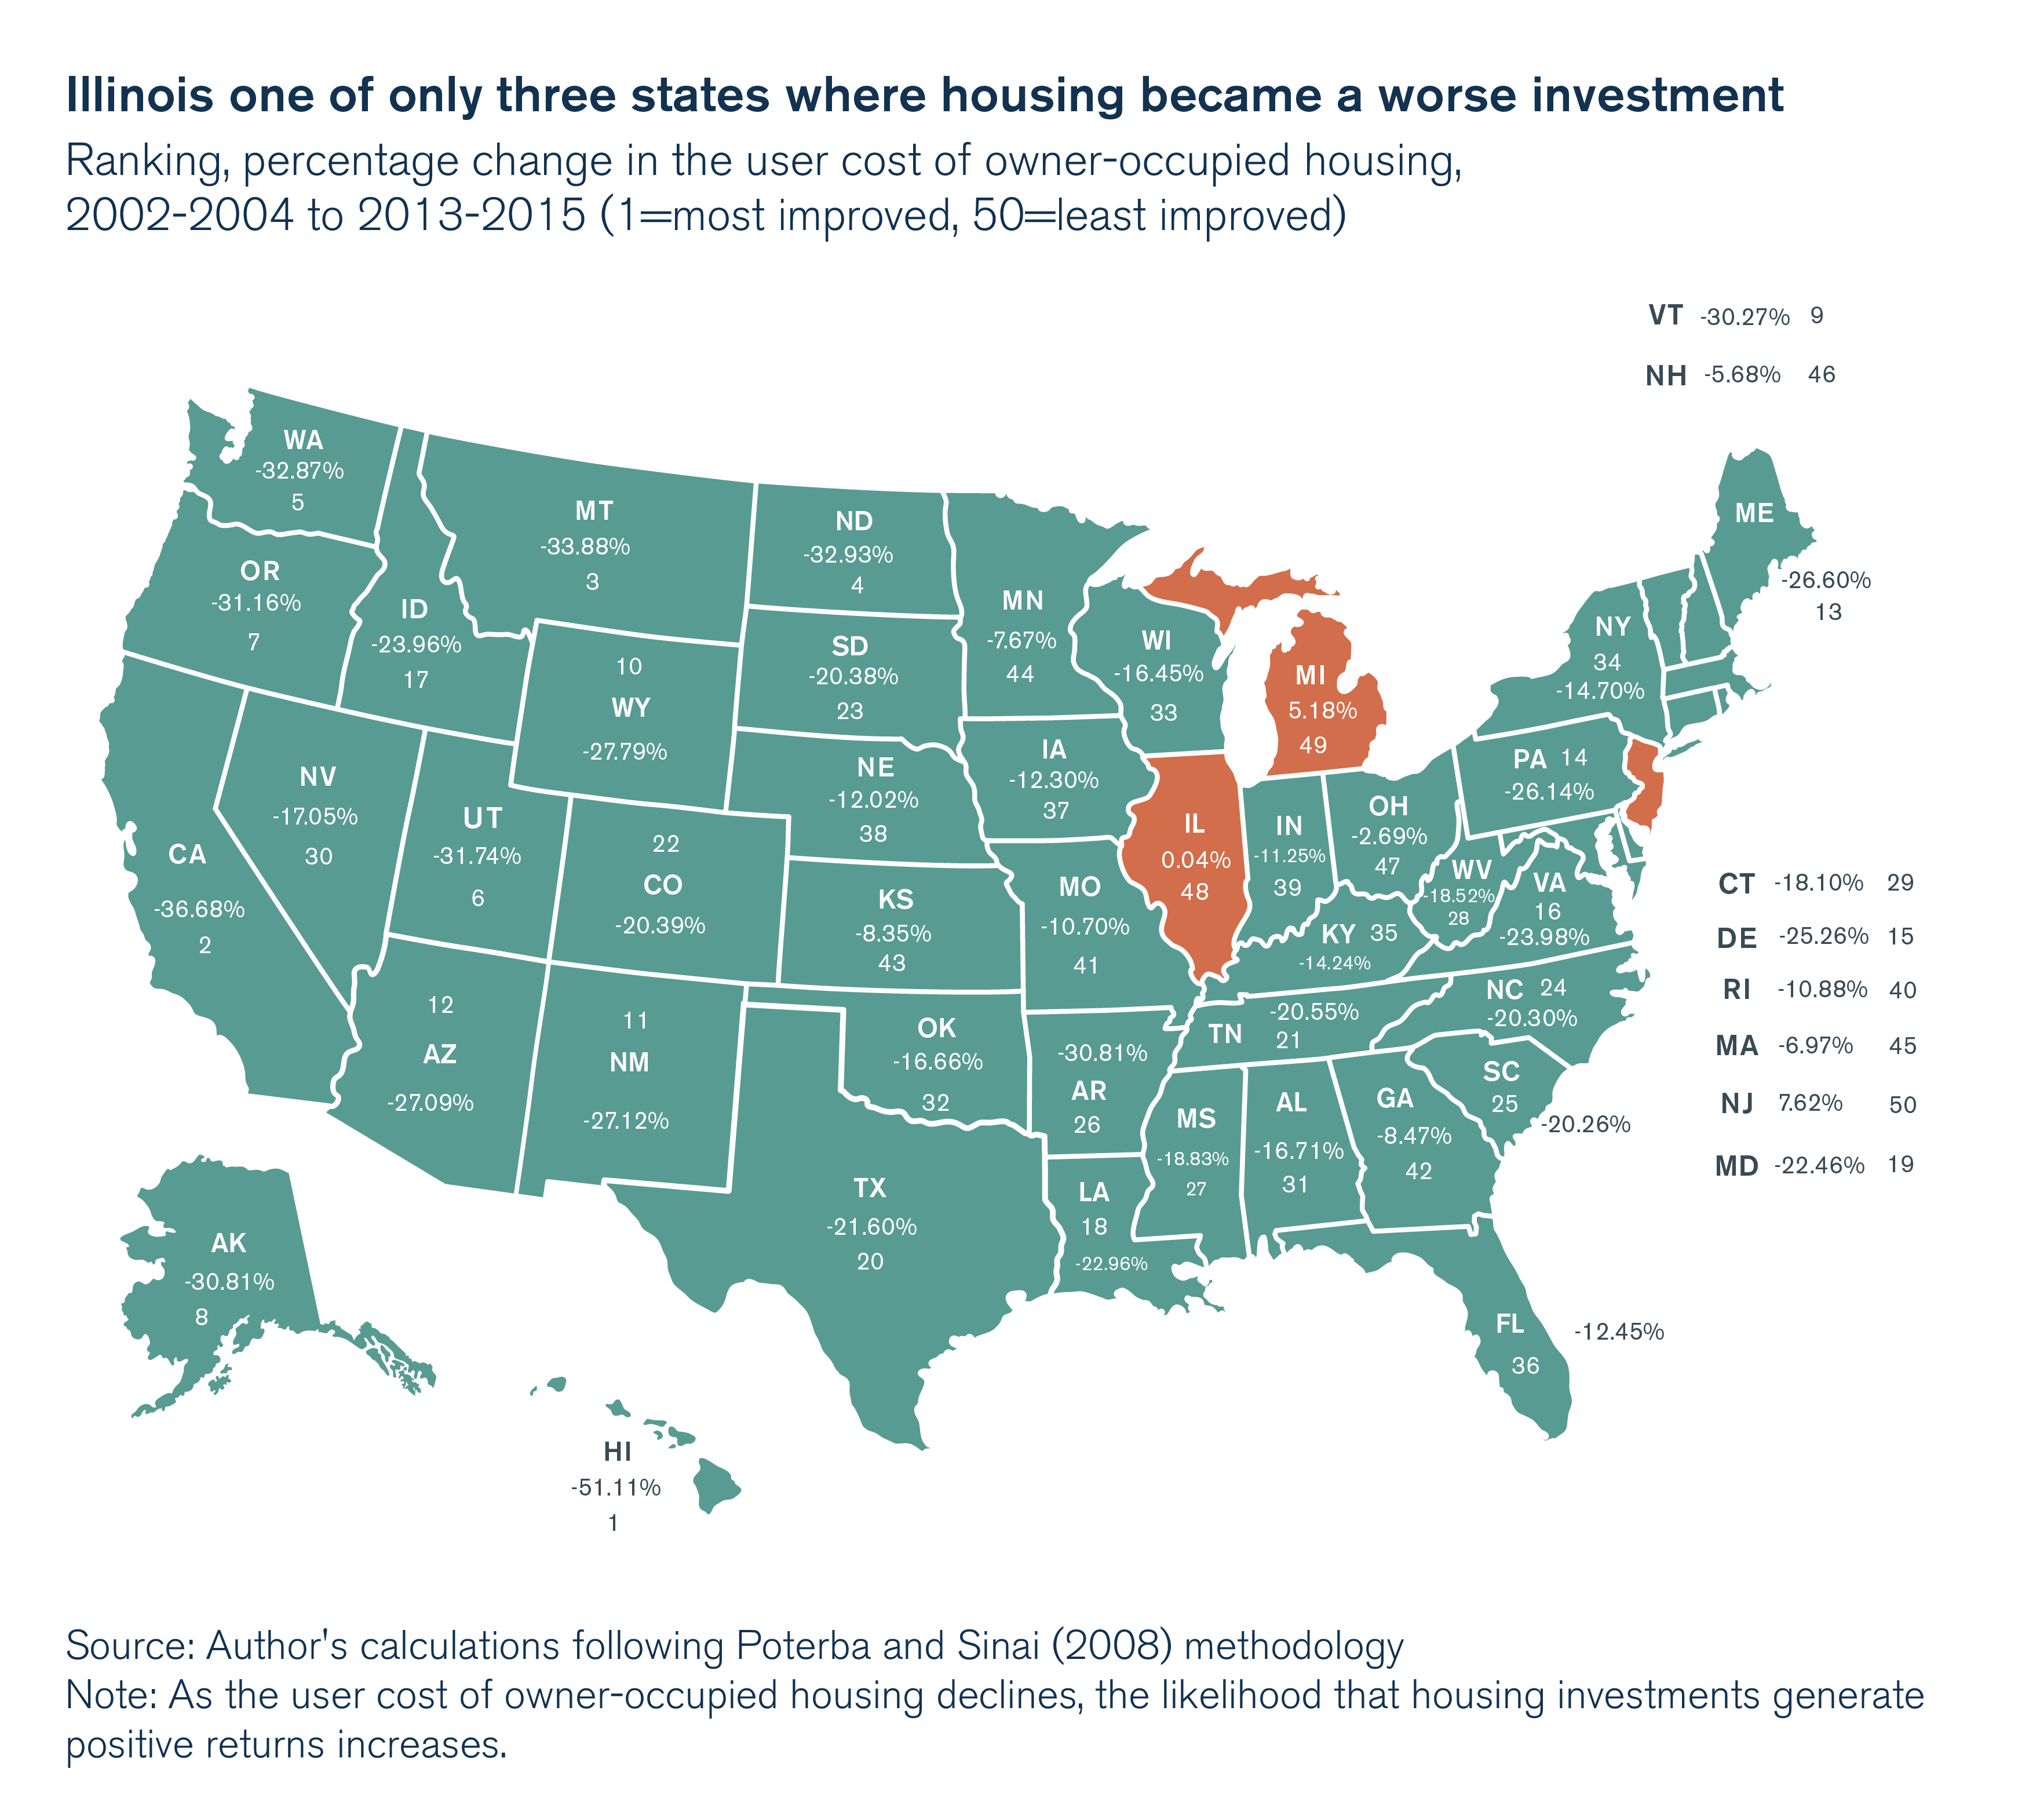 Illinois one of only three states where housing became a worse investment